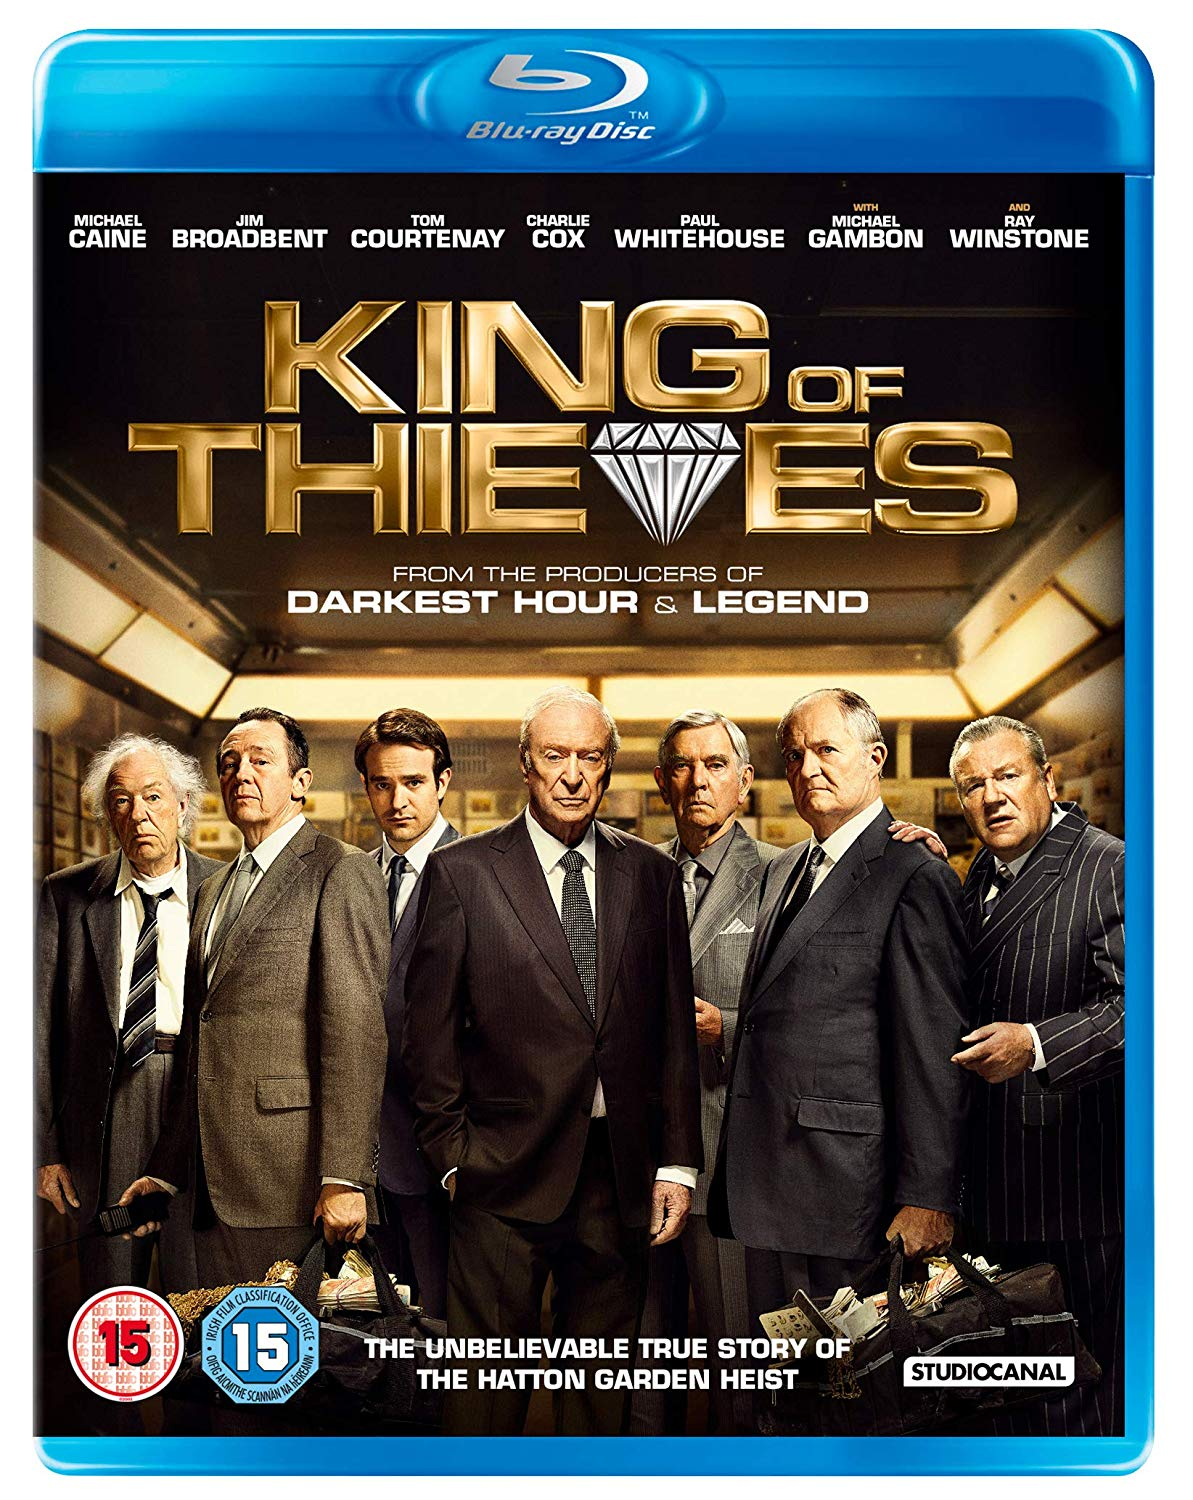 King of Thieves (2018) poster image